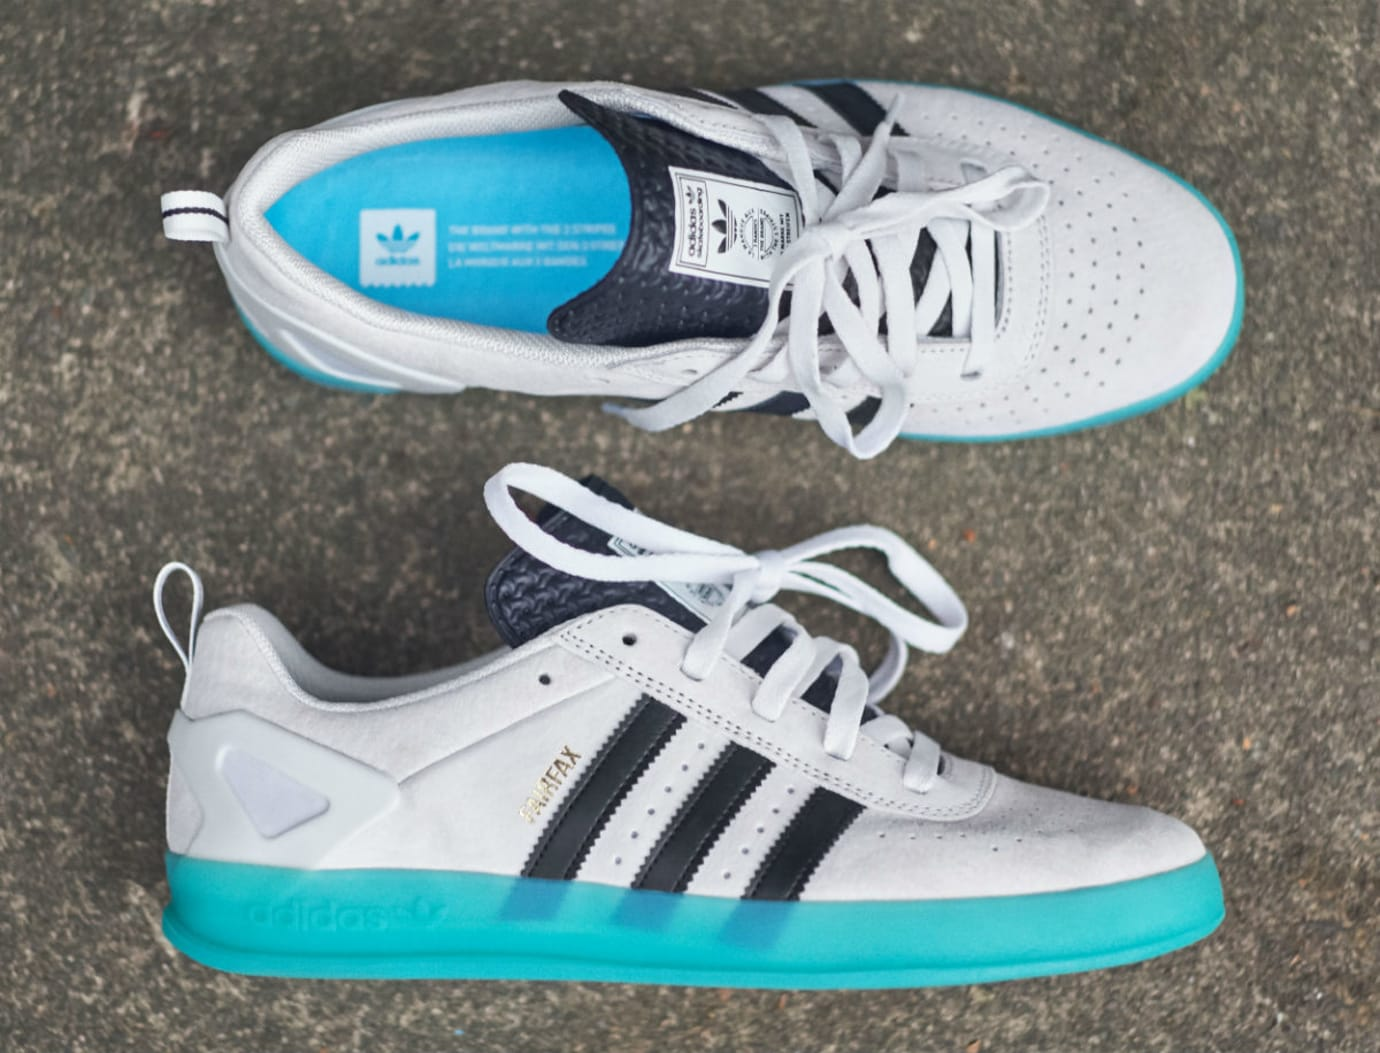 Adidas Palace Pro Benny Fairfax Release Date (5)